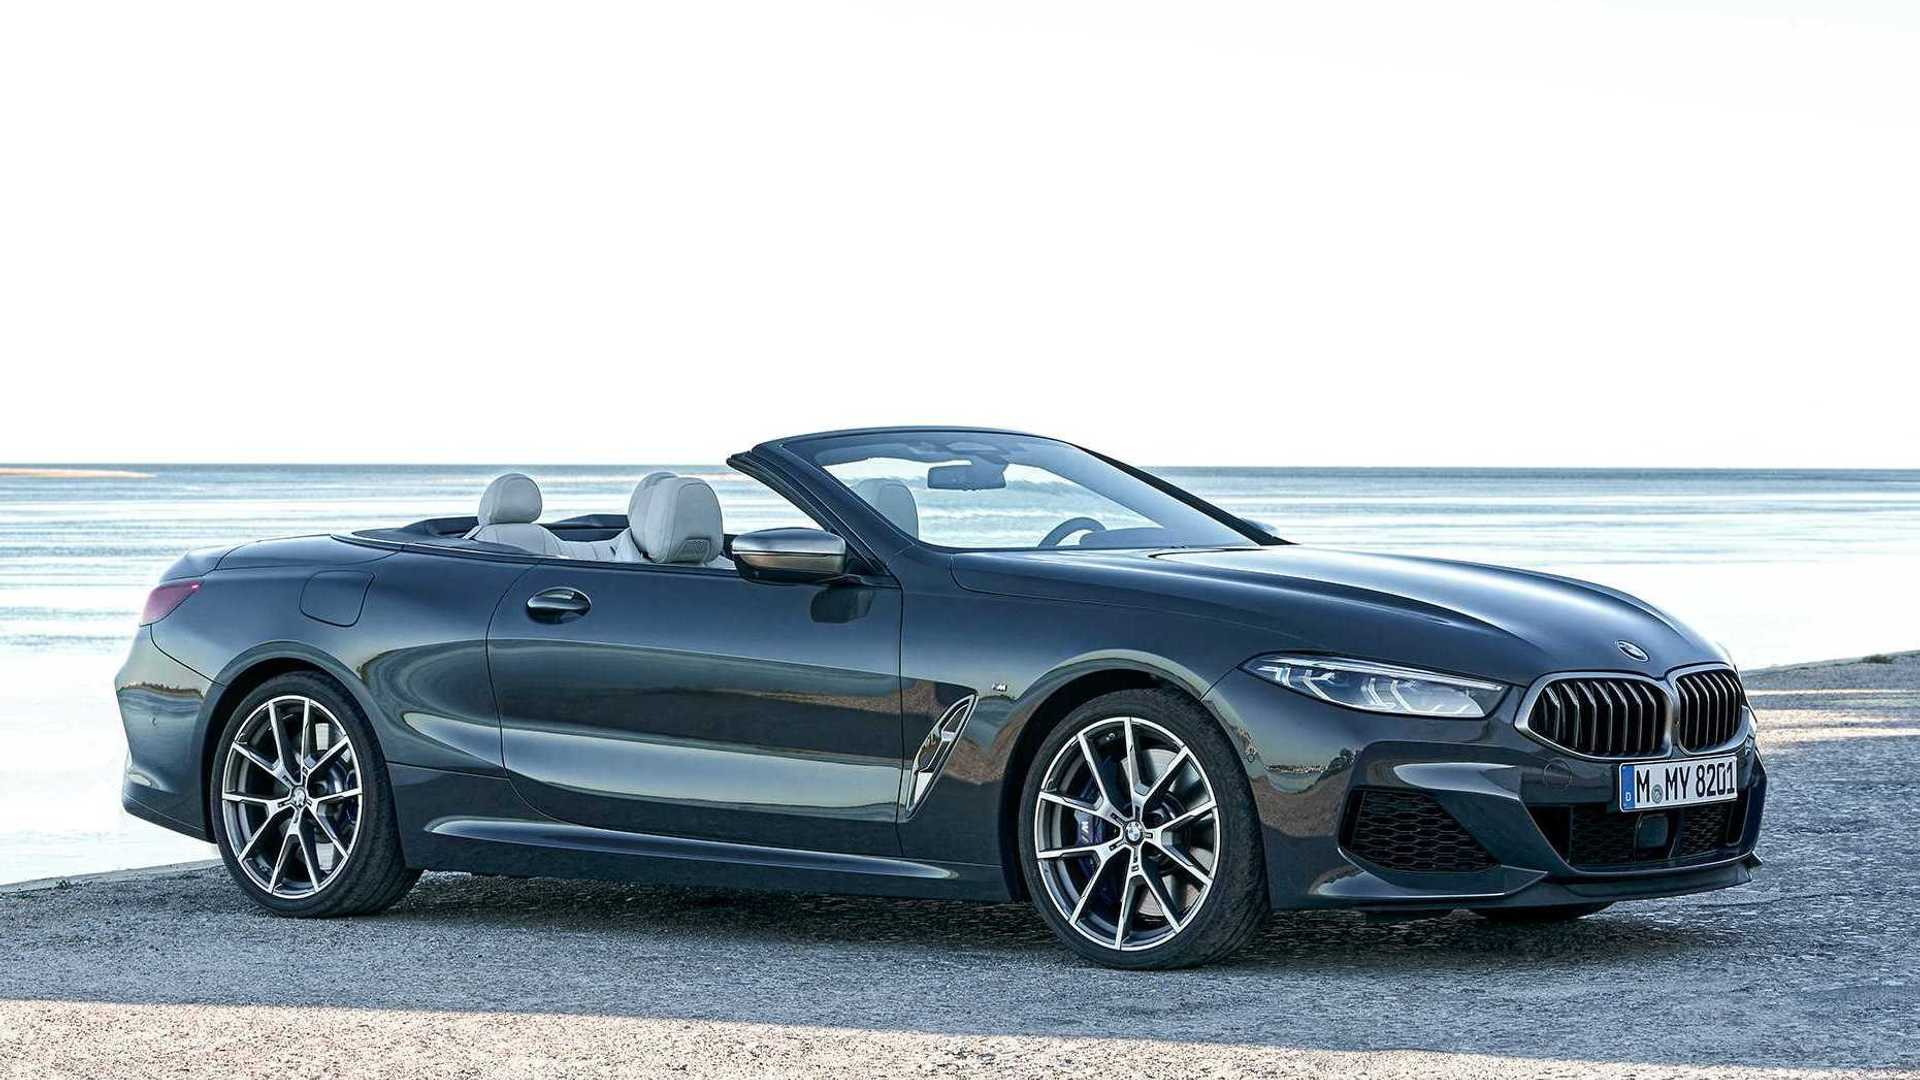 36 The Best 2020 Bmw 6 Series Convertible Exterior And Interior